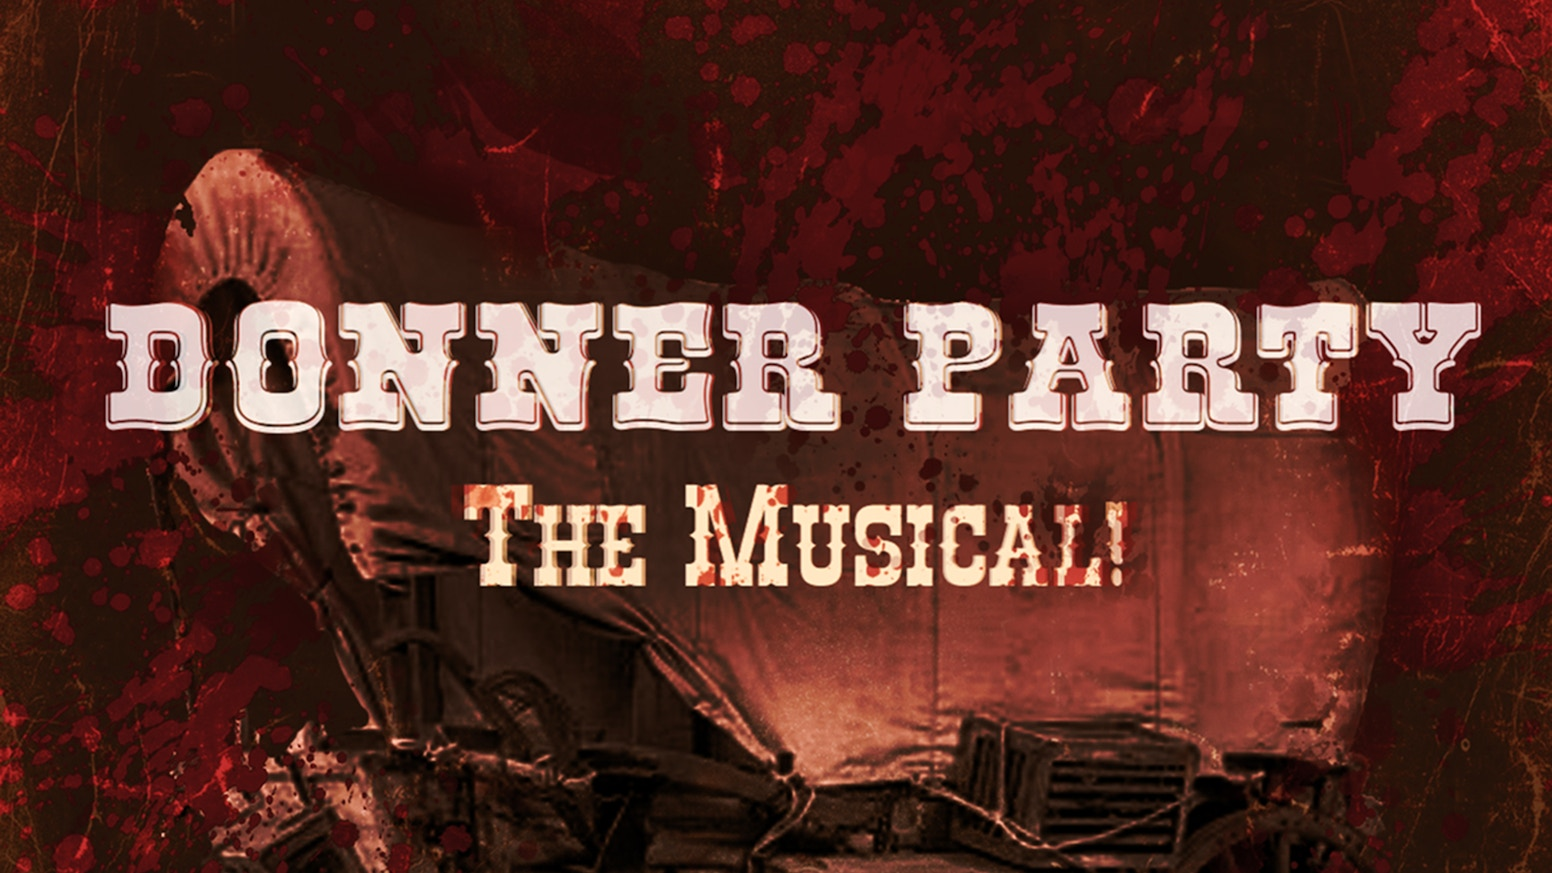 A short film about the infamous Donner Party's struggle westward and eventual cannibalism. Oh...and it's a musical comedy!